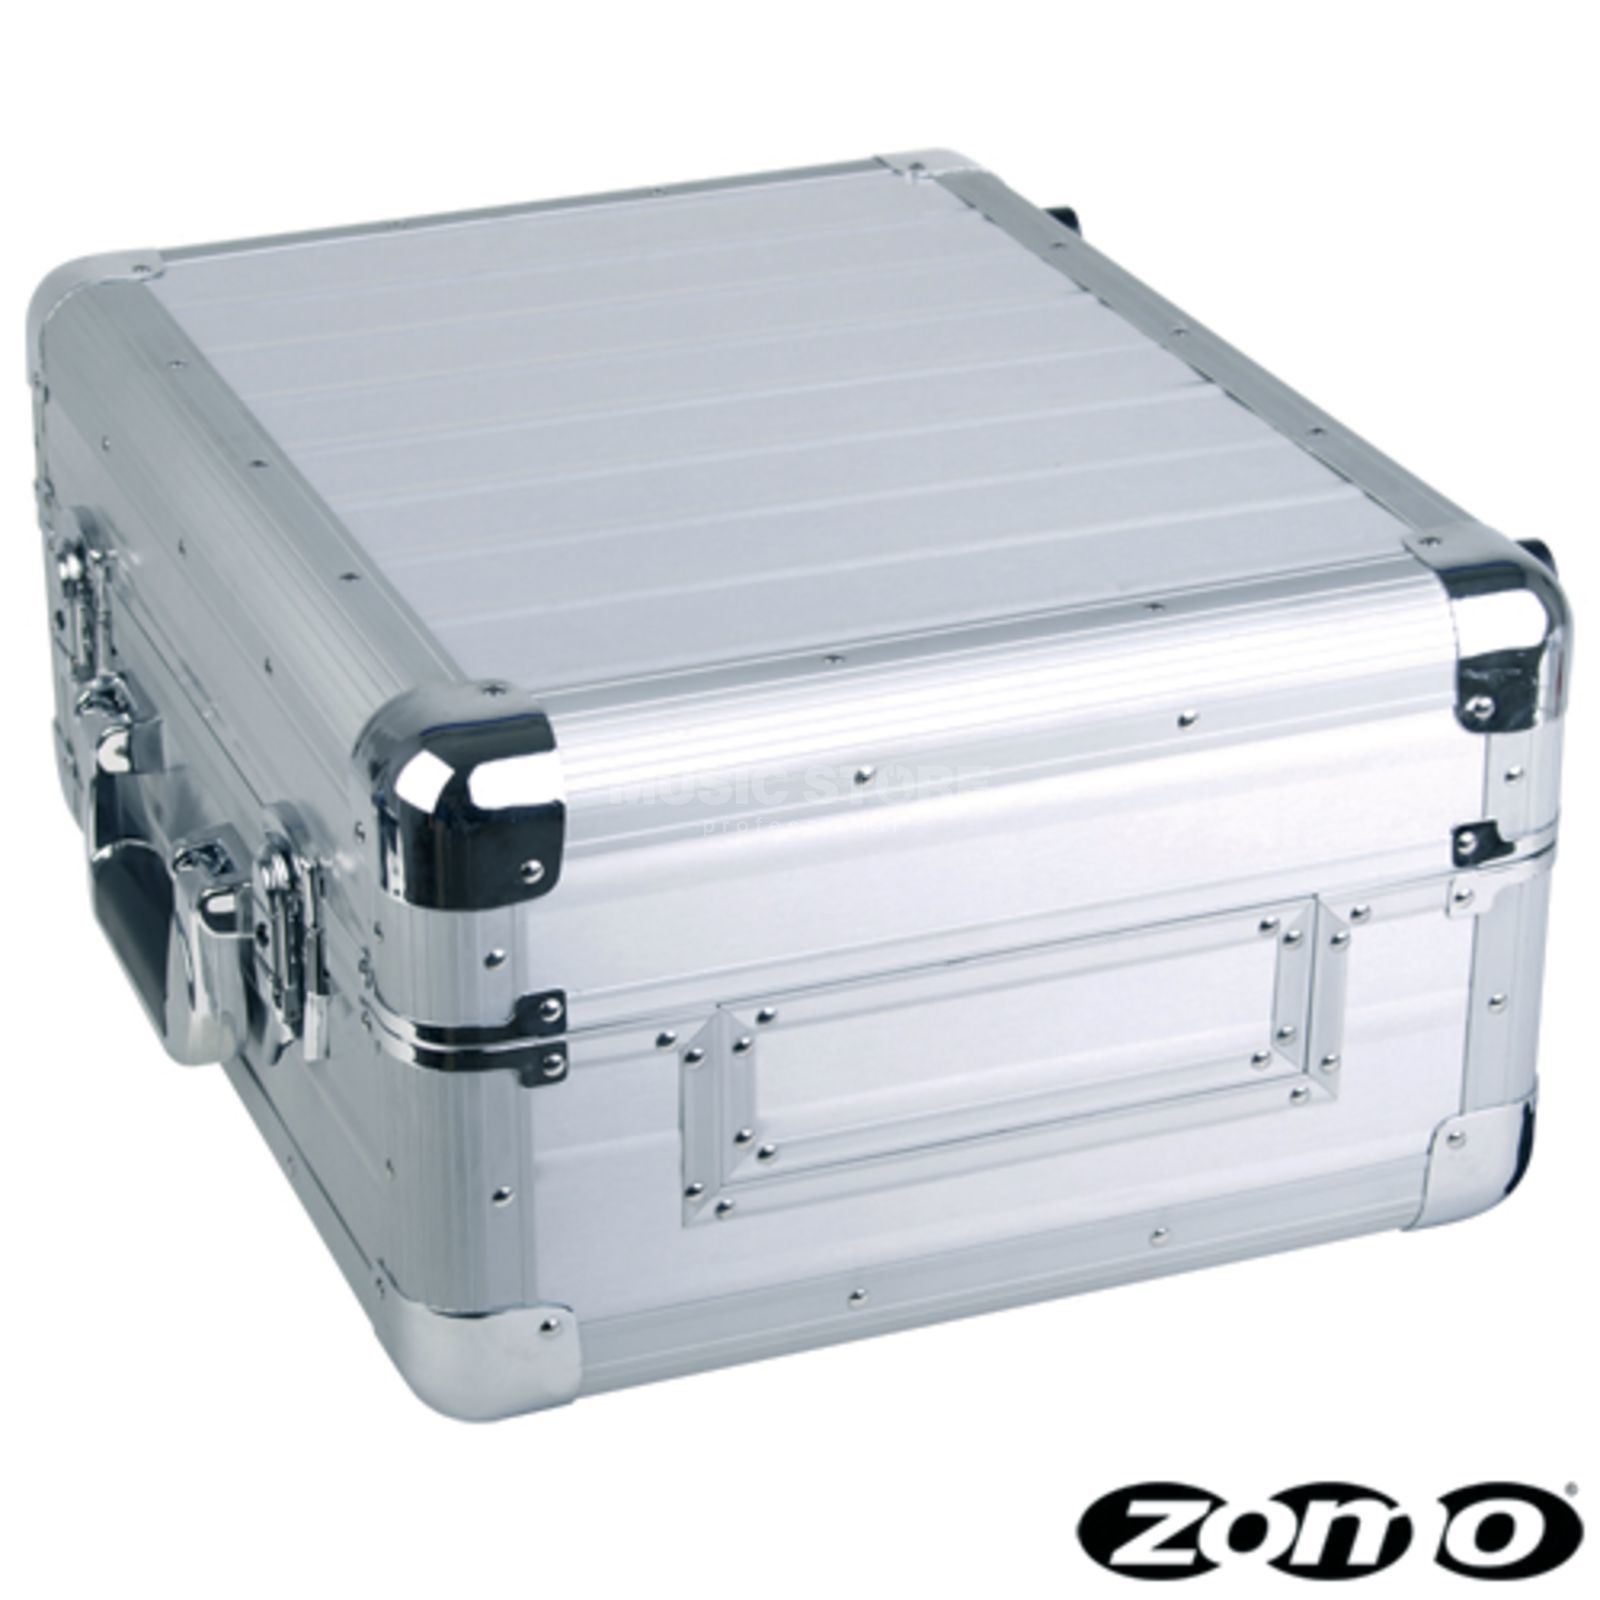 "Zomo Universal Case CDJ-1 XT silver for CD-Player / 12"" Mixer Product Image"